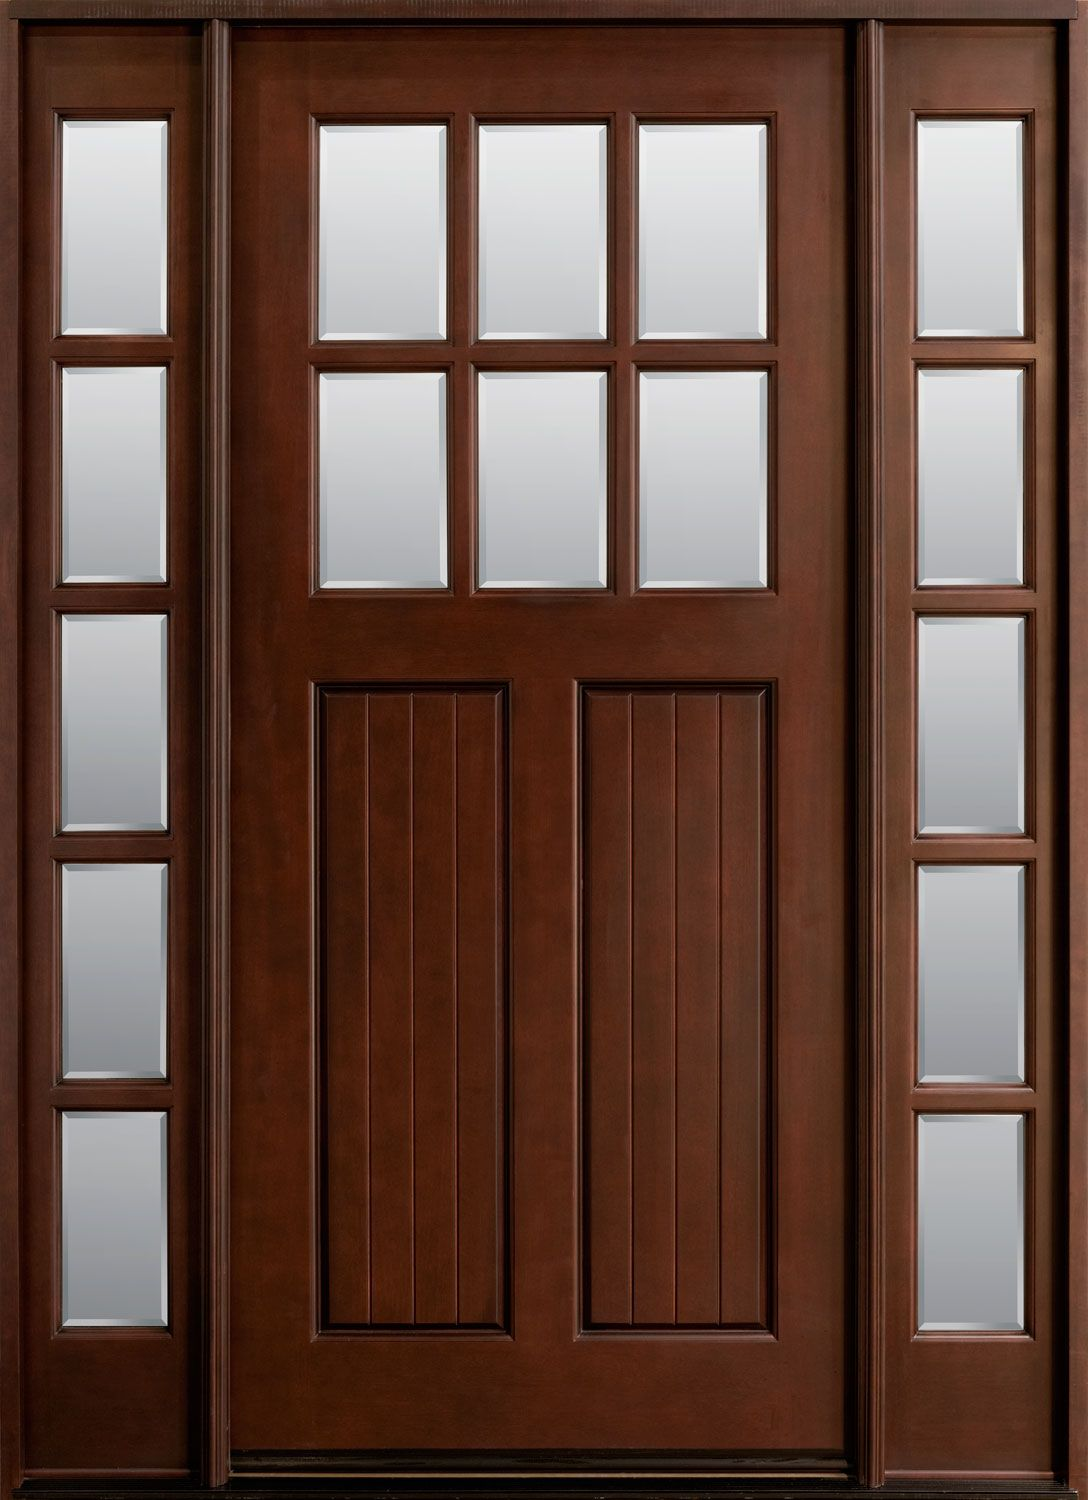 Solid wood entry and interior doors door pinterest for Wood door design latest